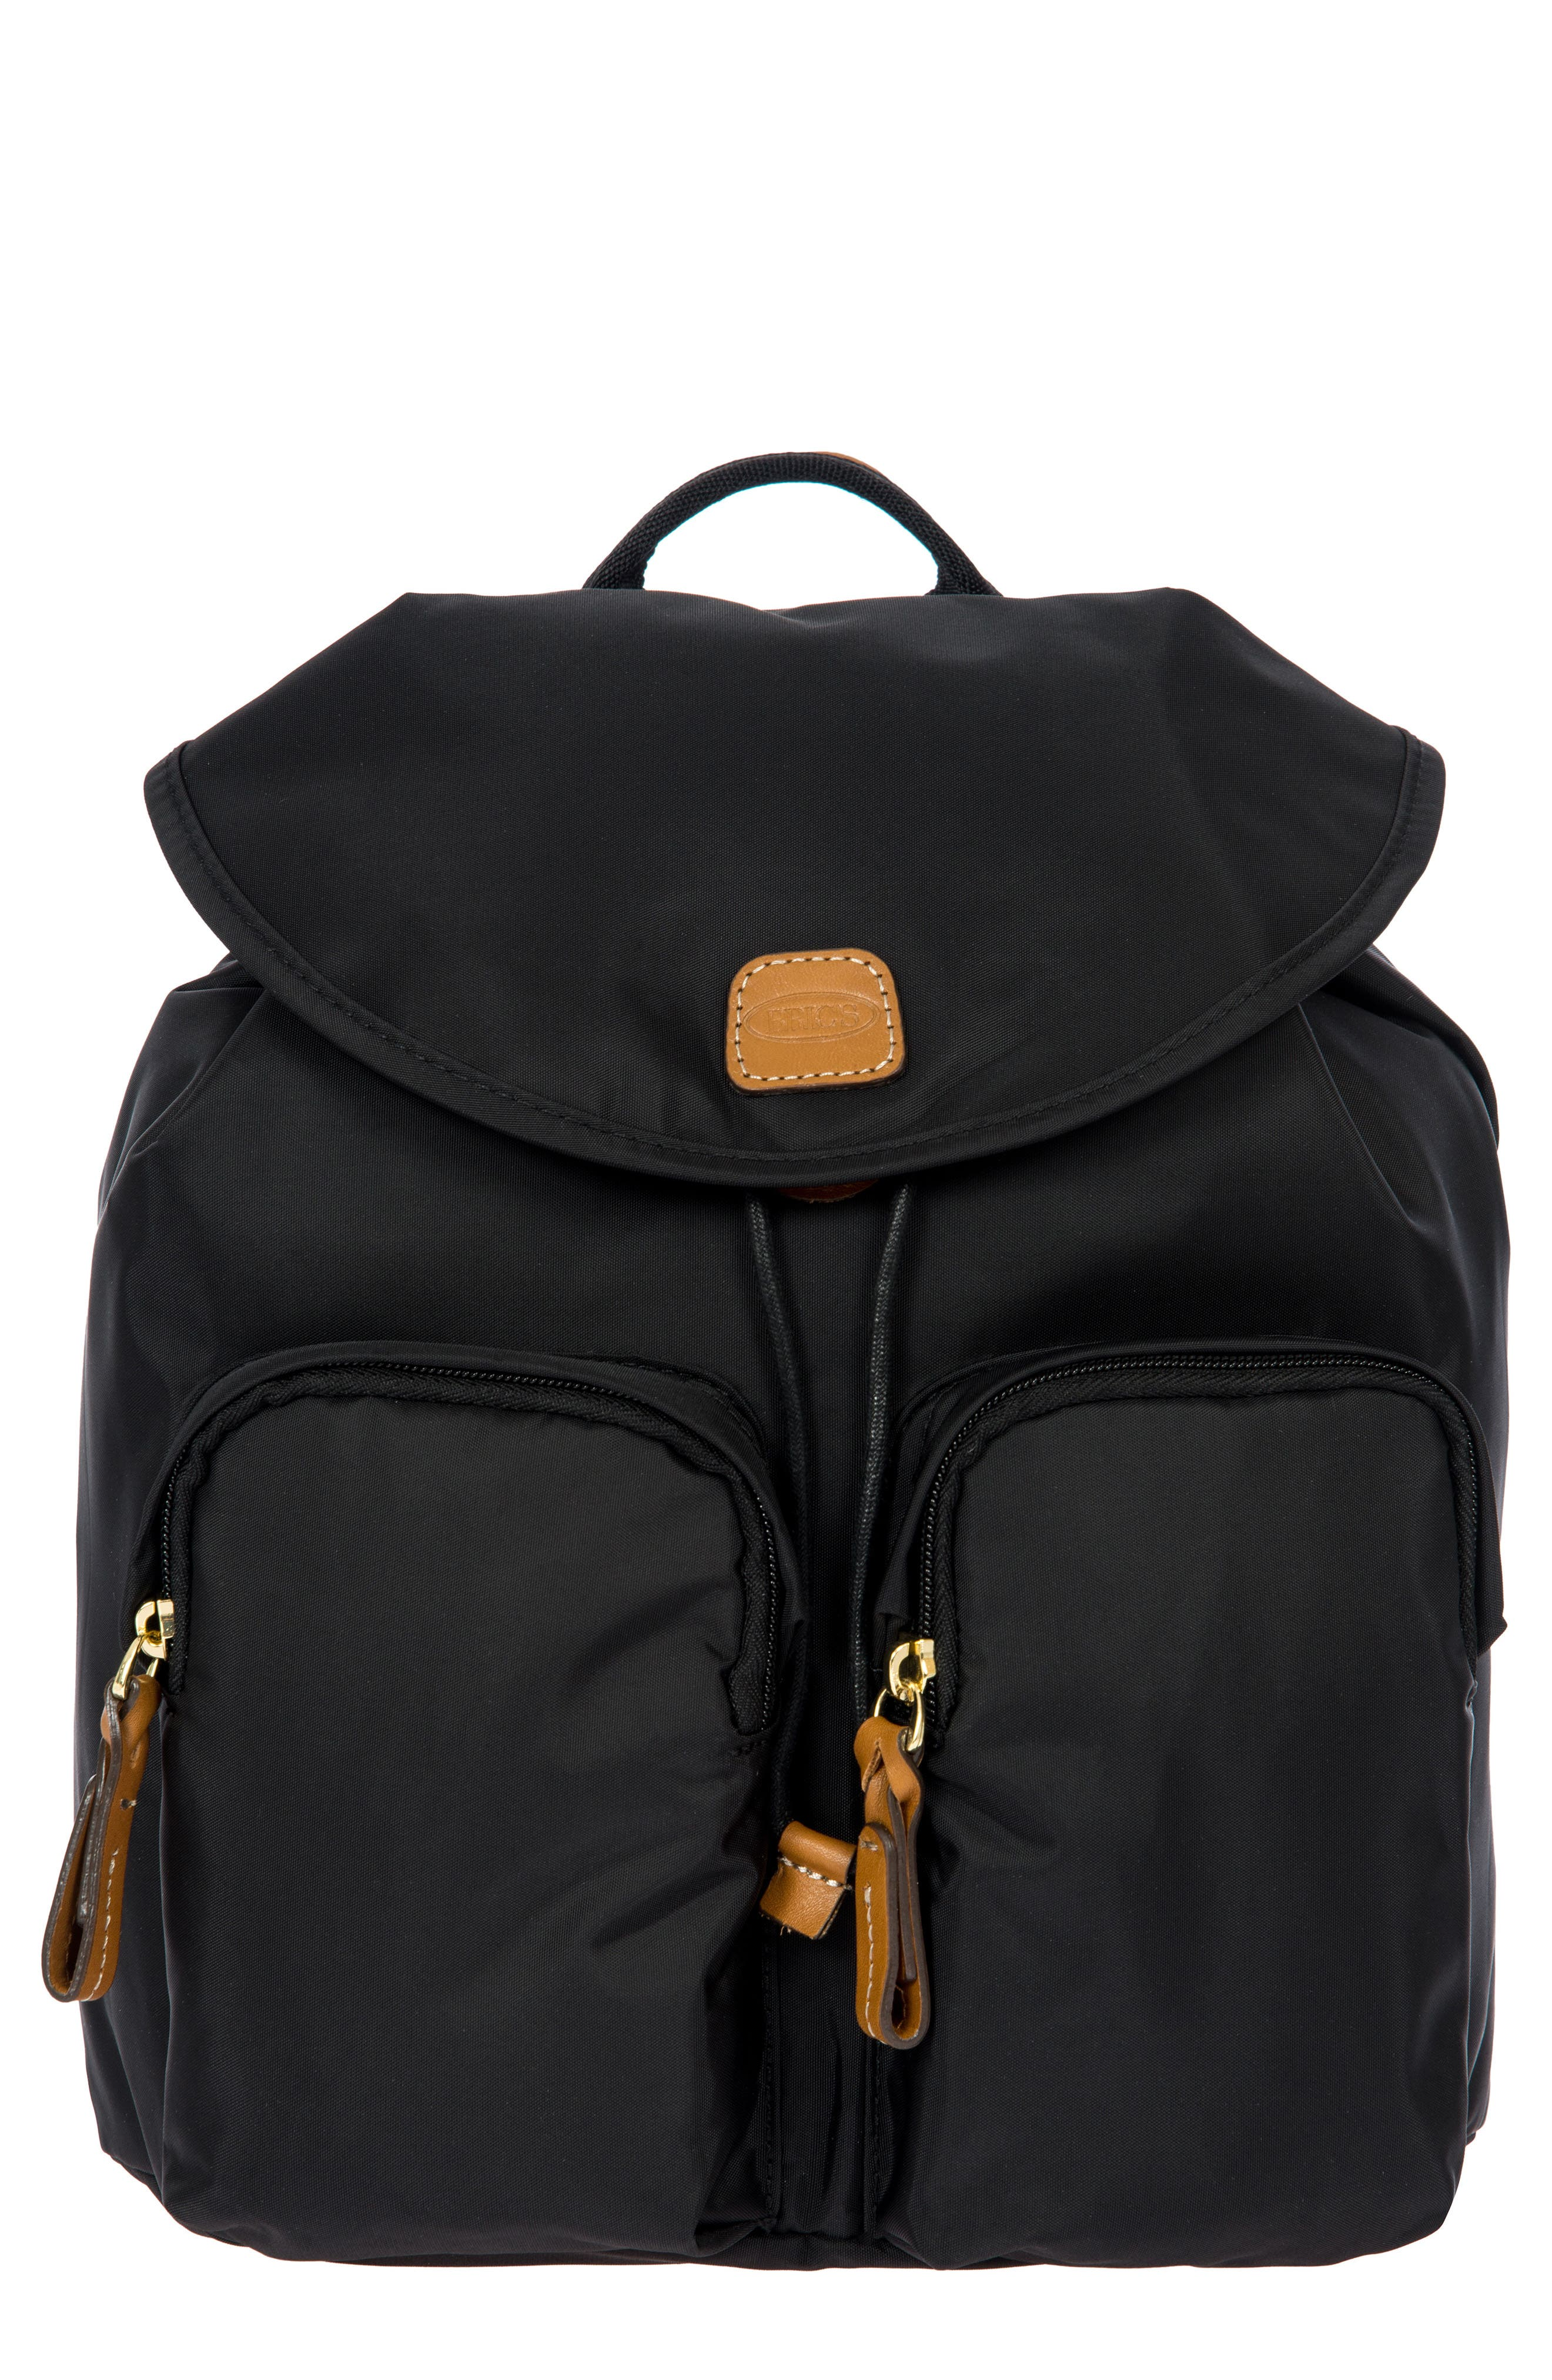 X-Travel City Backpack,                         Main,                         color, BLACK